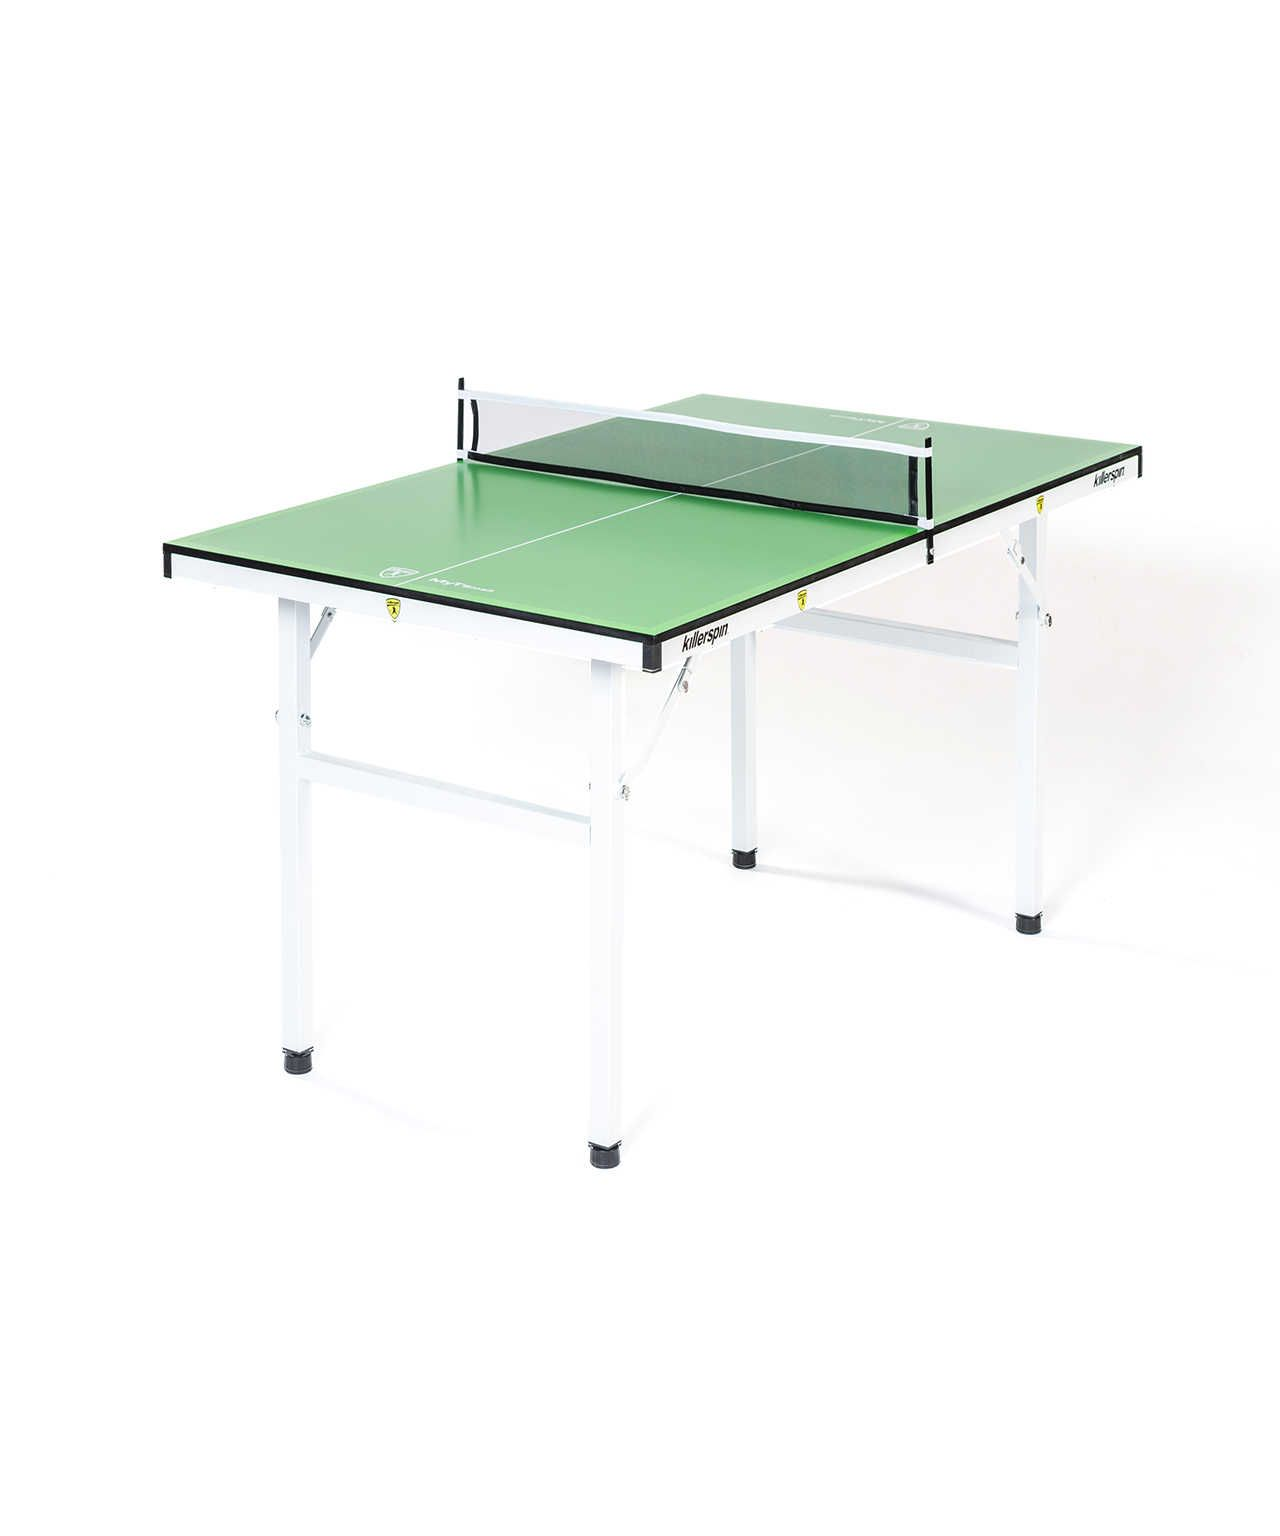 Killerspin Myt Small Lime Green White Table Tennis Table Mini Table Ping Pong Table Table Tennis